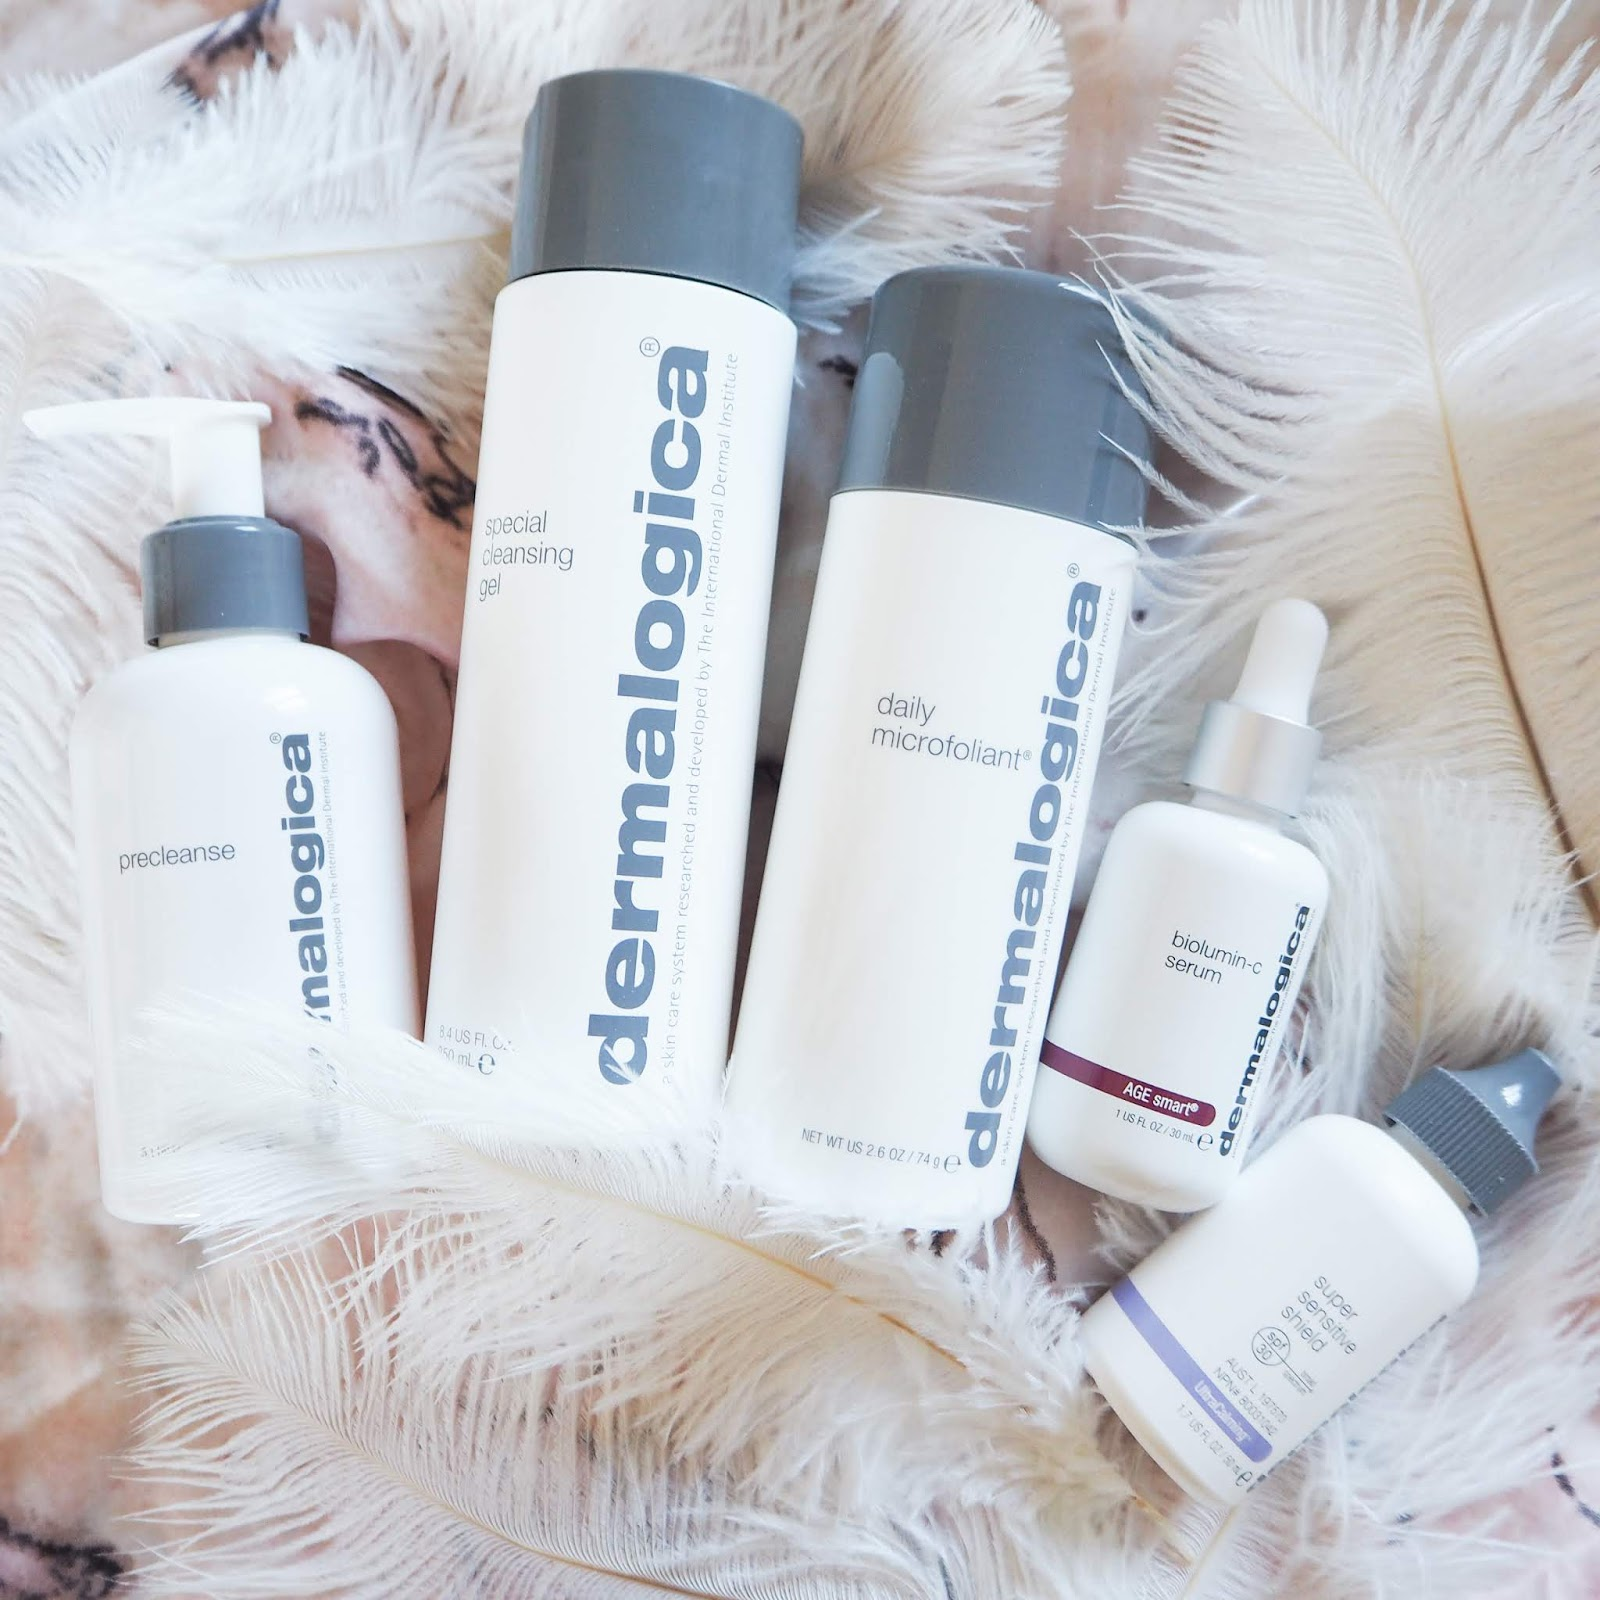 Dermalogica #Skinfluencer Skincare Routine and Mini Reviews